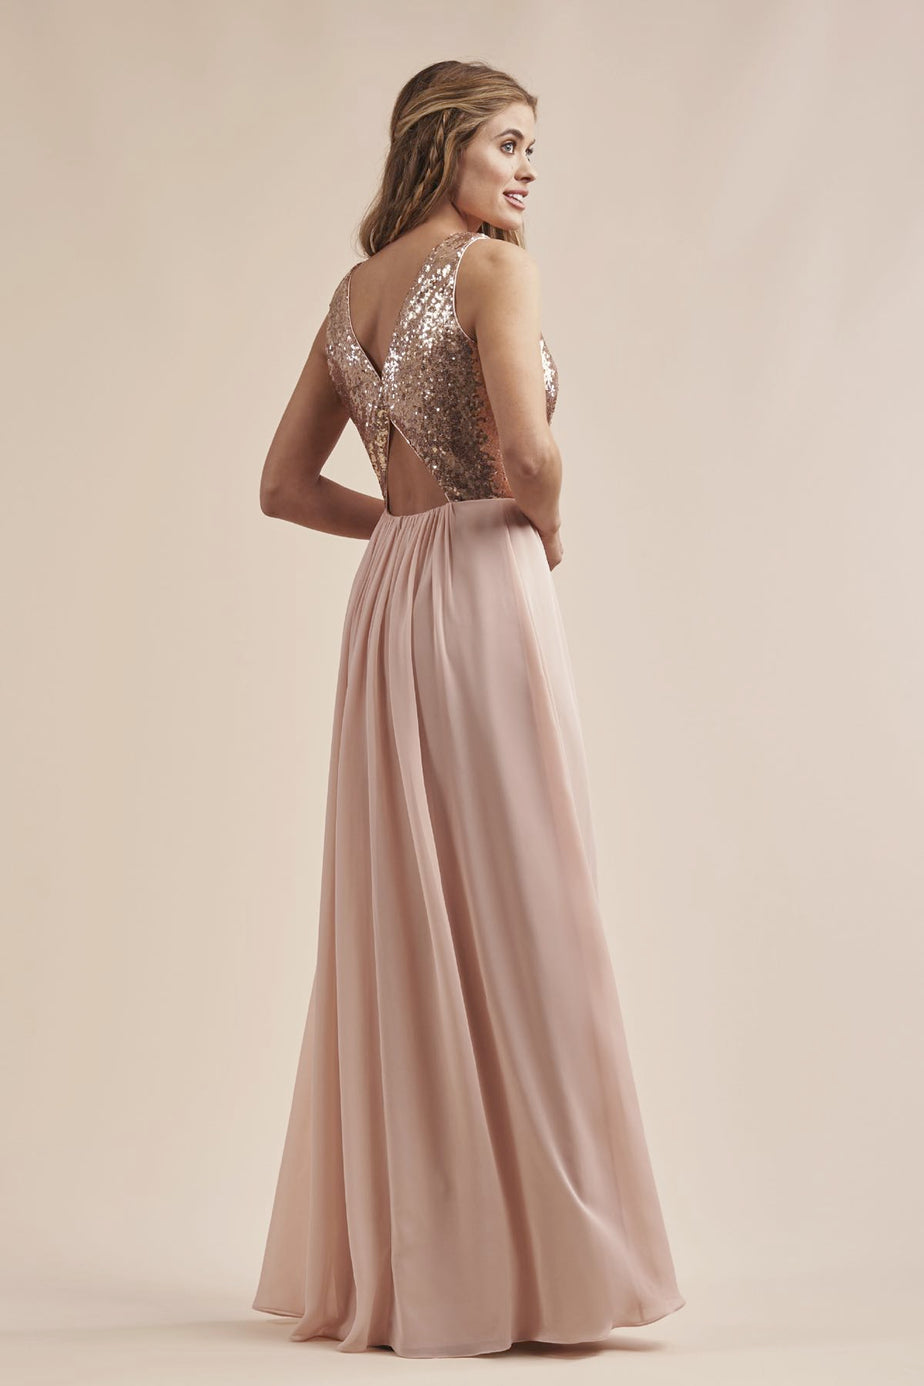 |B2 B213065 Bridesmaid Dress